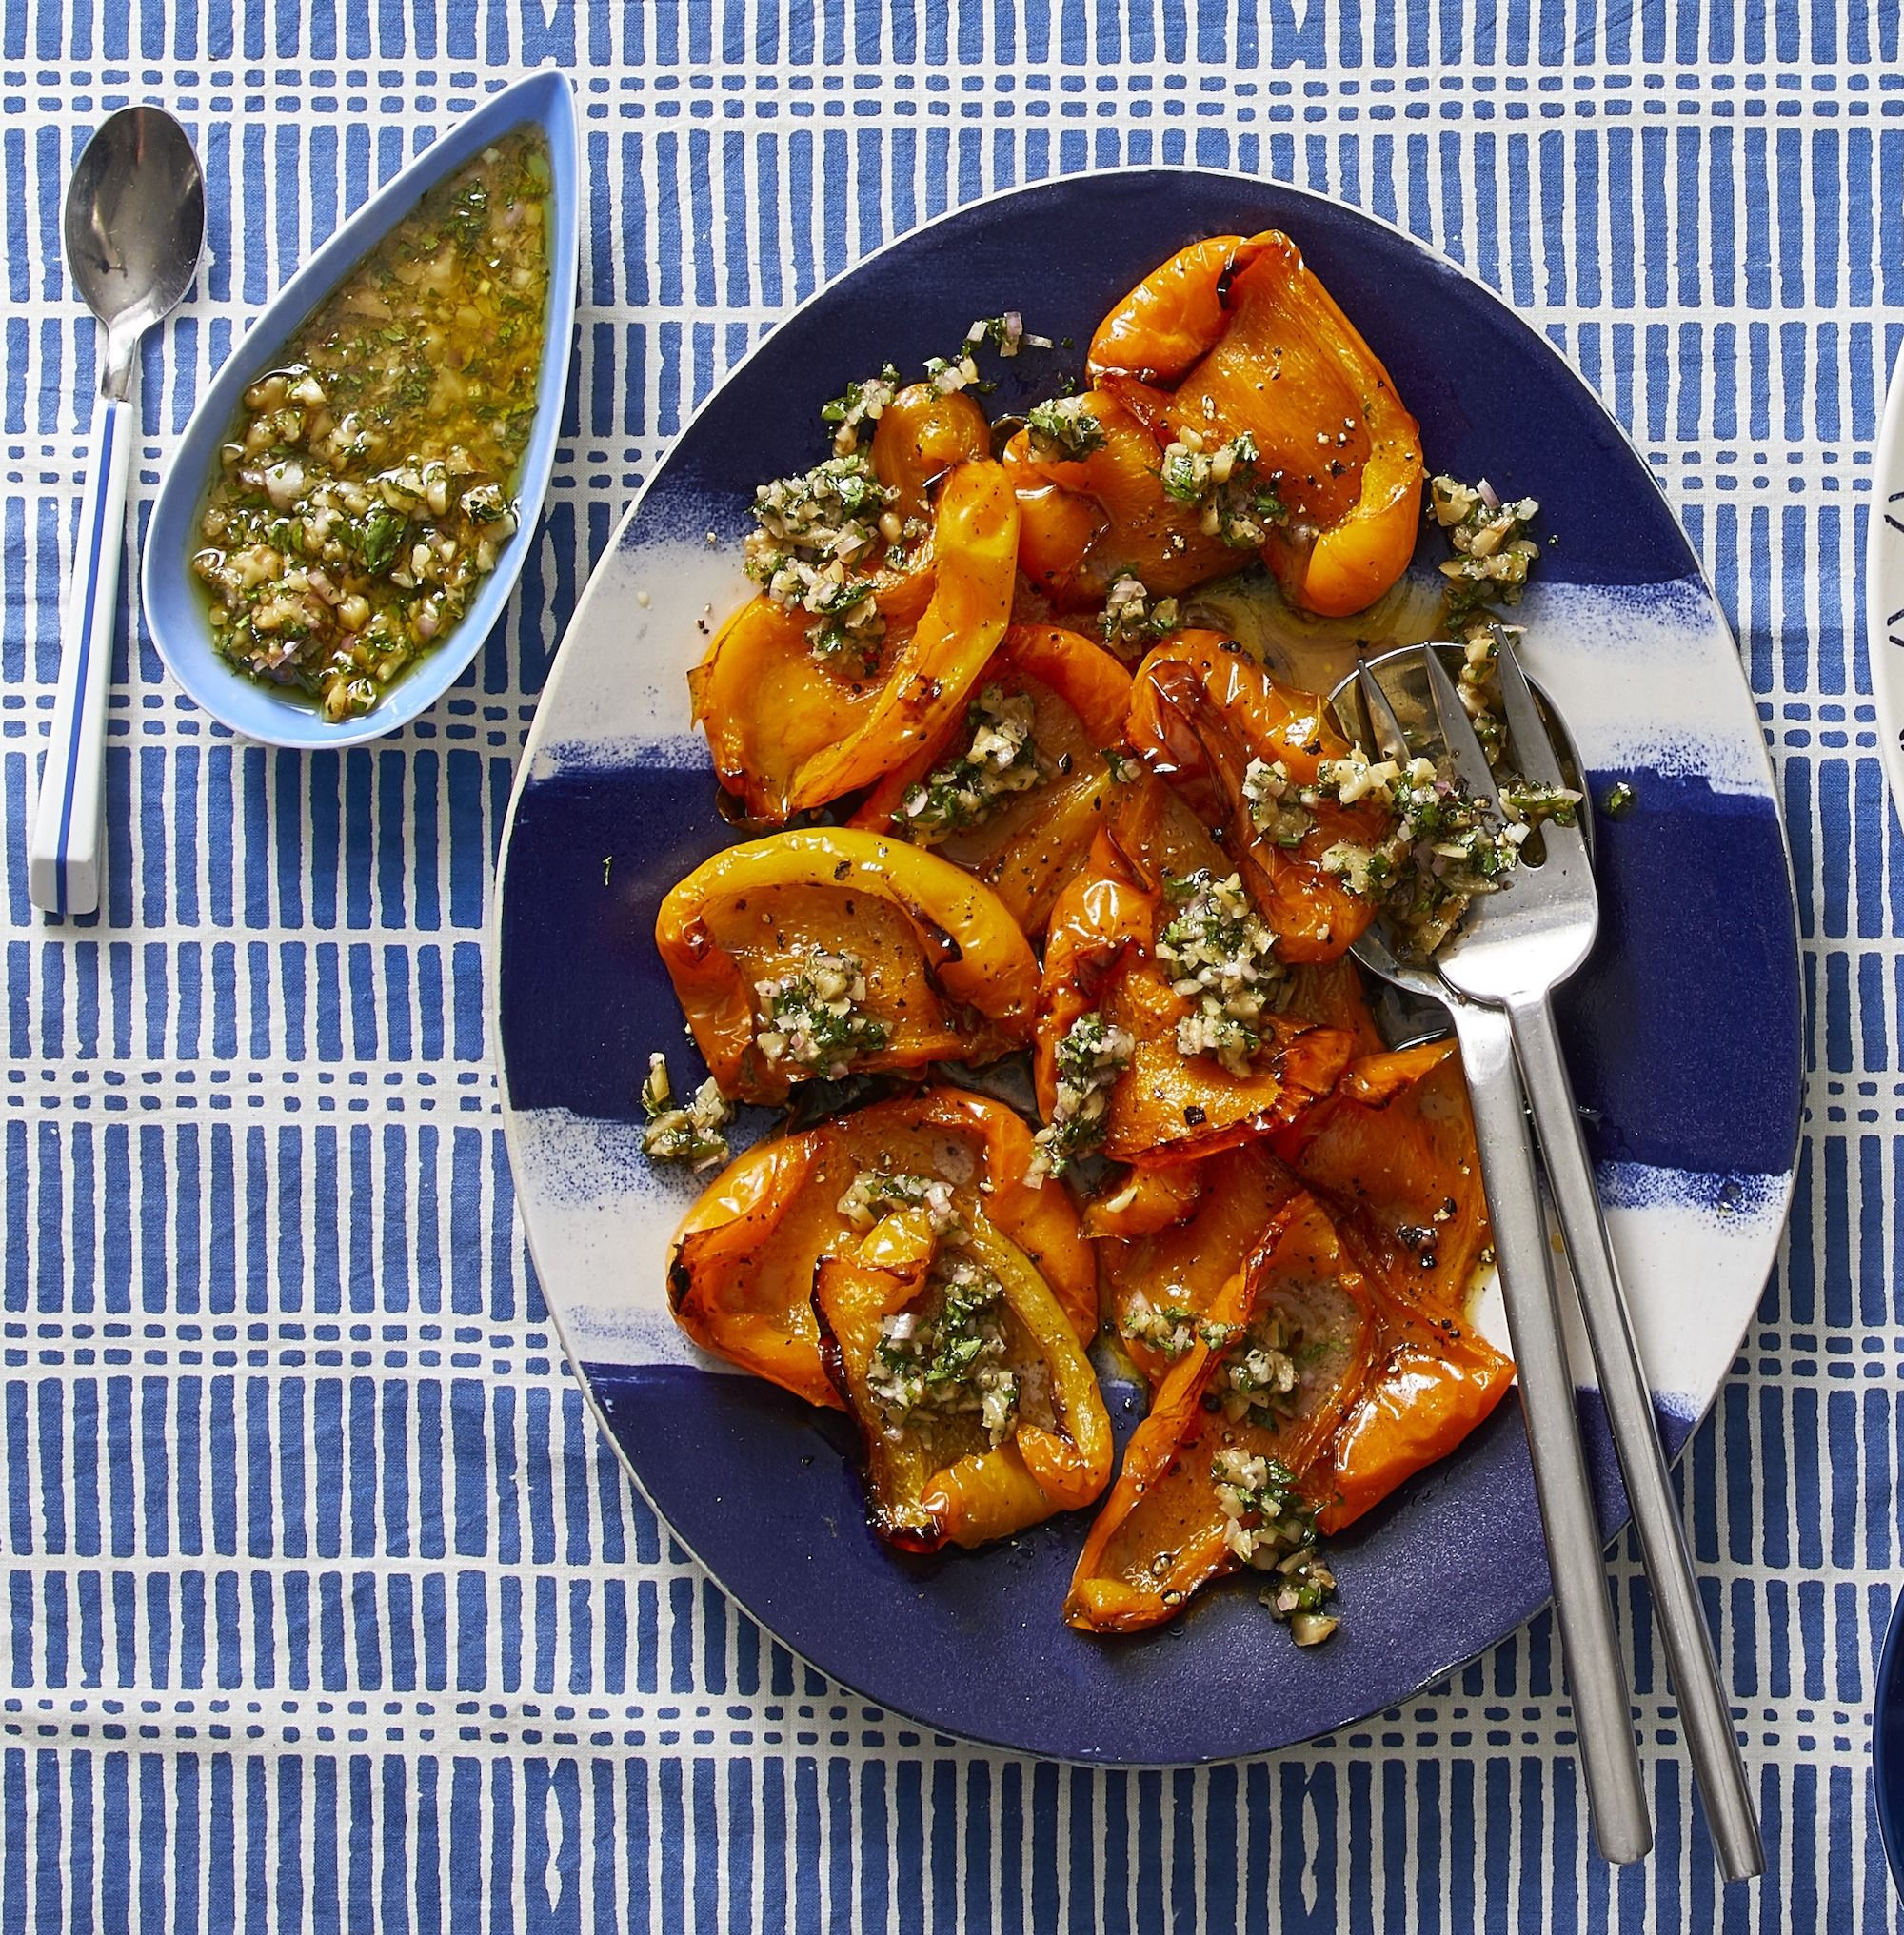 Slow-Roasted Orange Bell Peppers With Walnut Relish